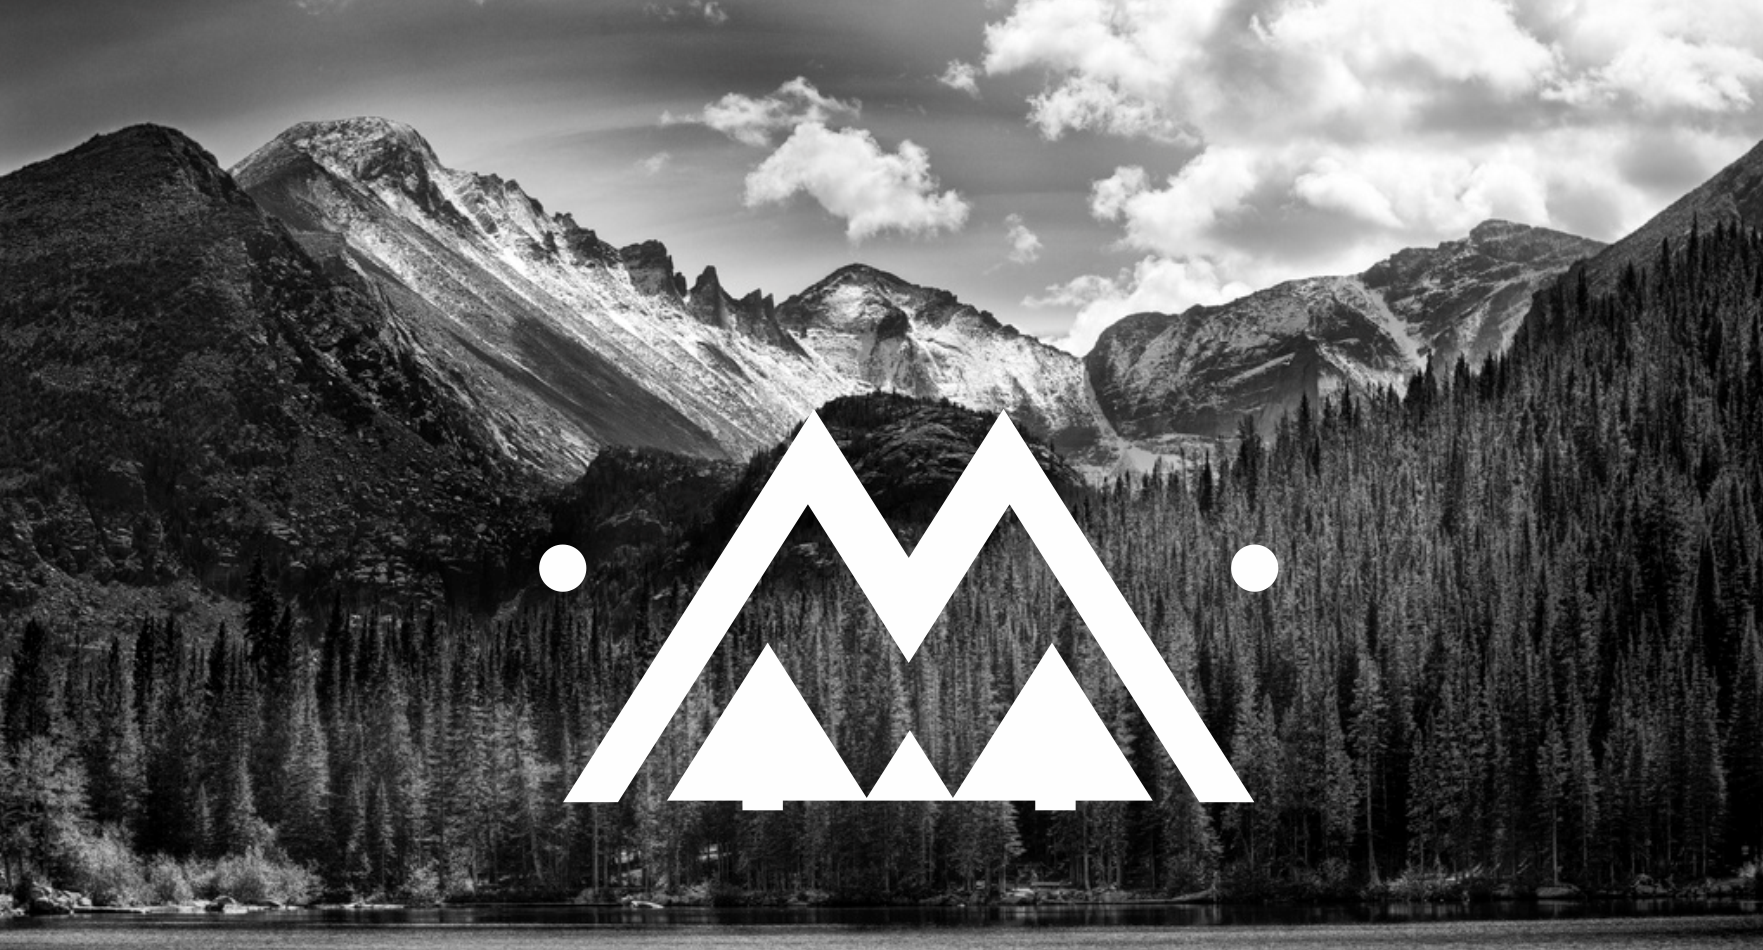 Mountain-themed logo